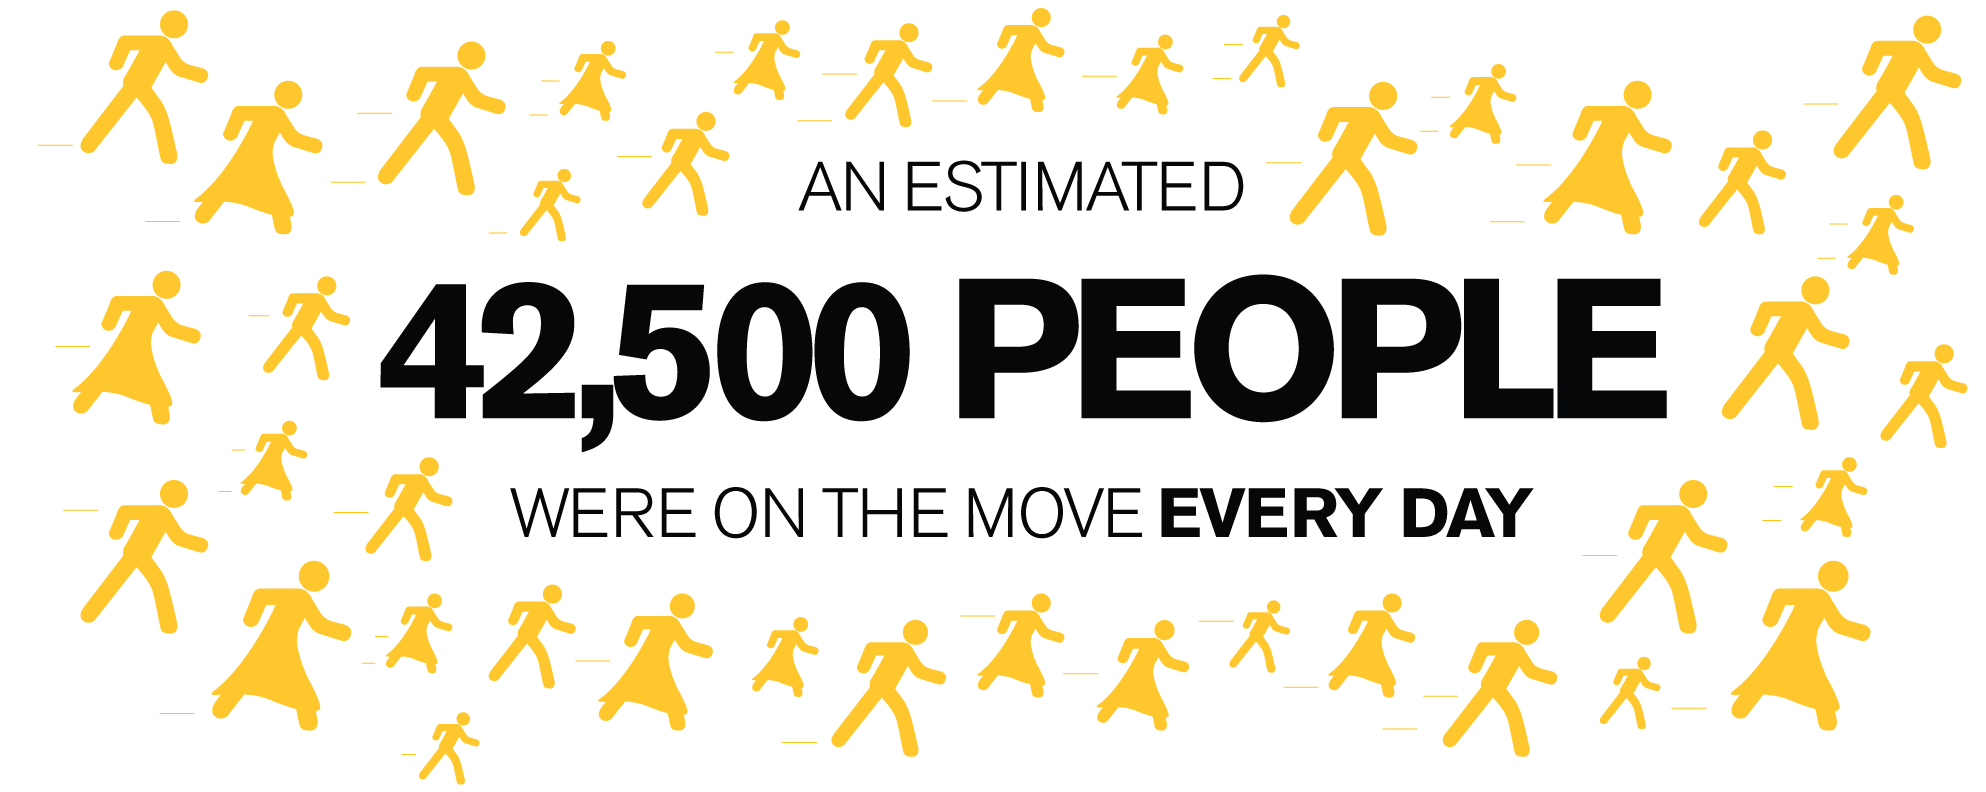 An estimated 42,500 people were on the move every day